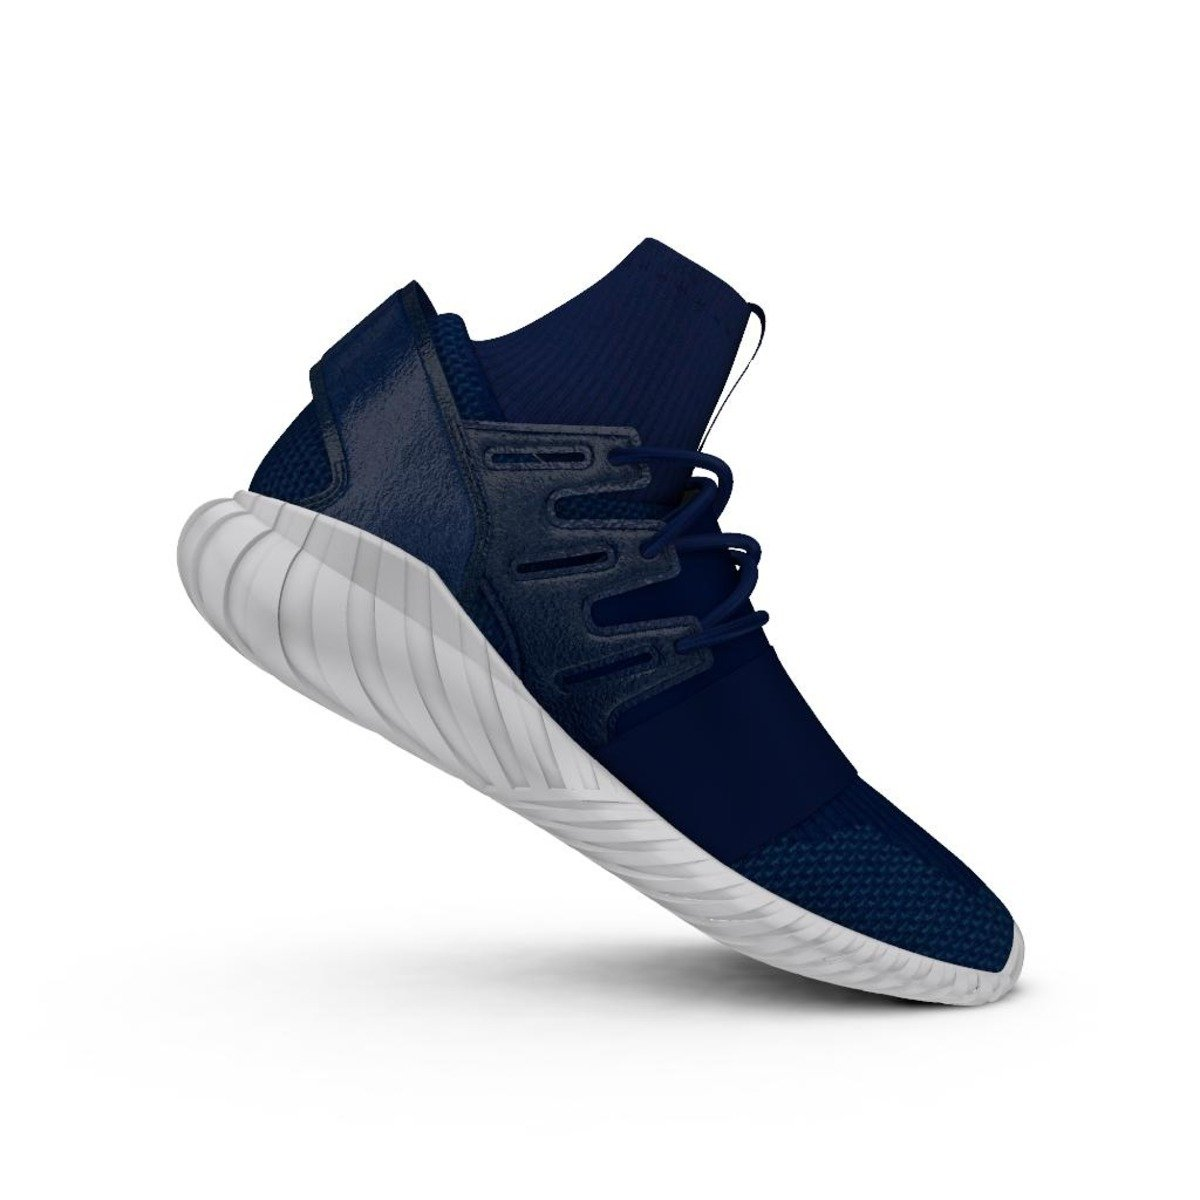 reputable site 94bab d4ba6 Adidas Originals Tubular Doom Primeknit Shoes - S80103